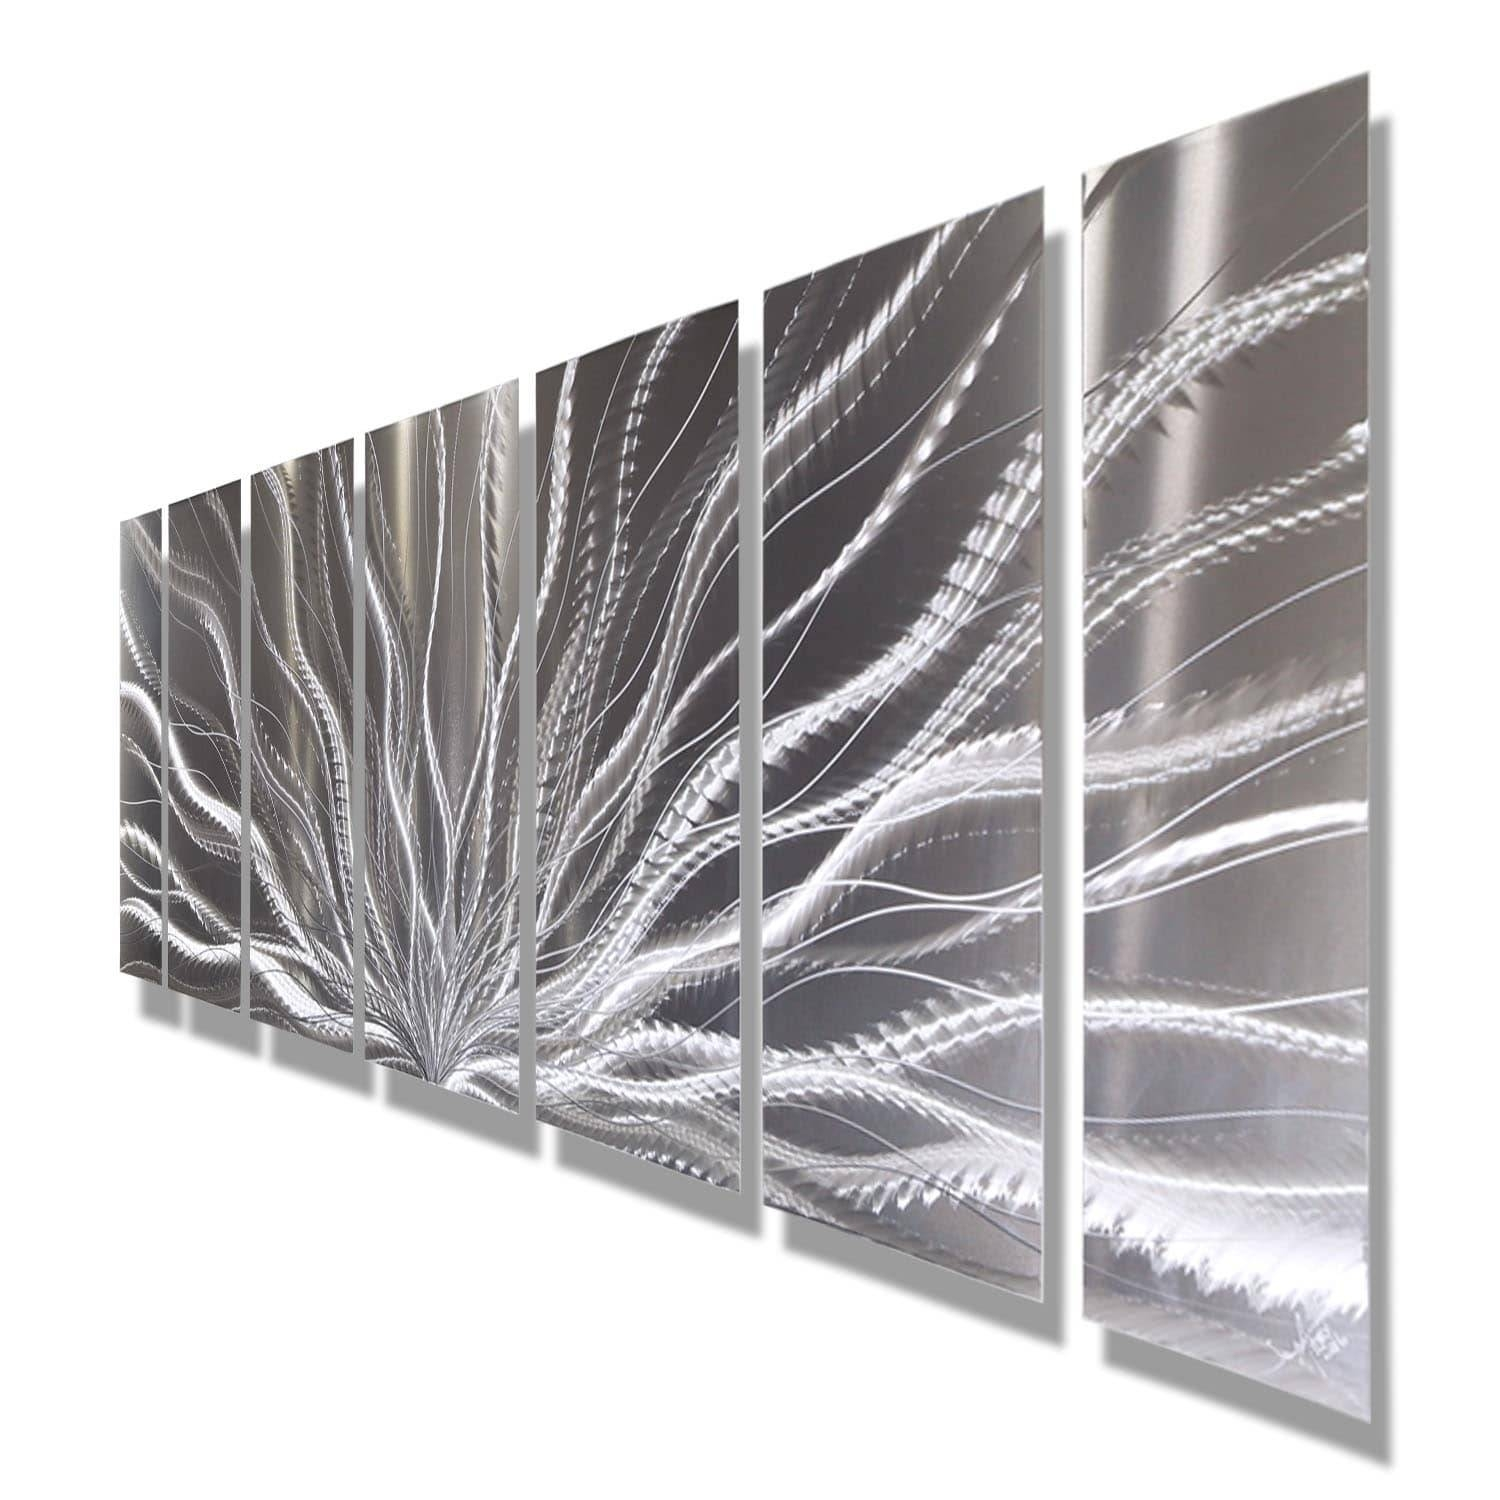 Statements2000 Silver Abstract Etched Metal Wall Art Sculpture Throughout Most Current Etched Metal Wall Art (View 16 of 20)